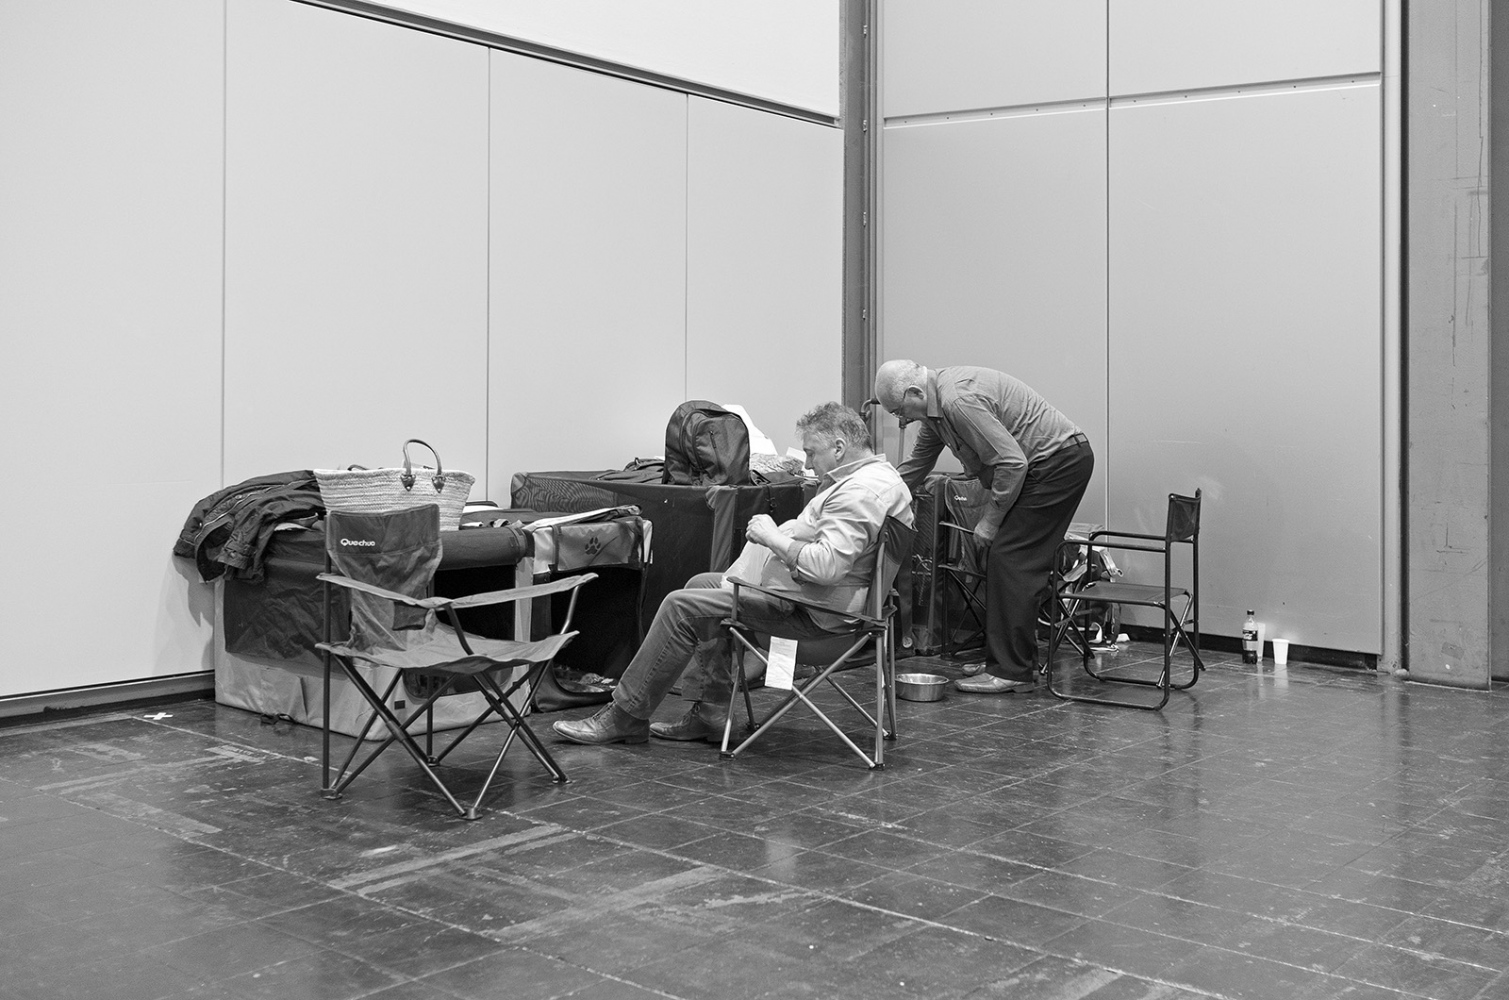 Art and Documentary Photography - Loading 171109140149_SW.jpg